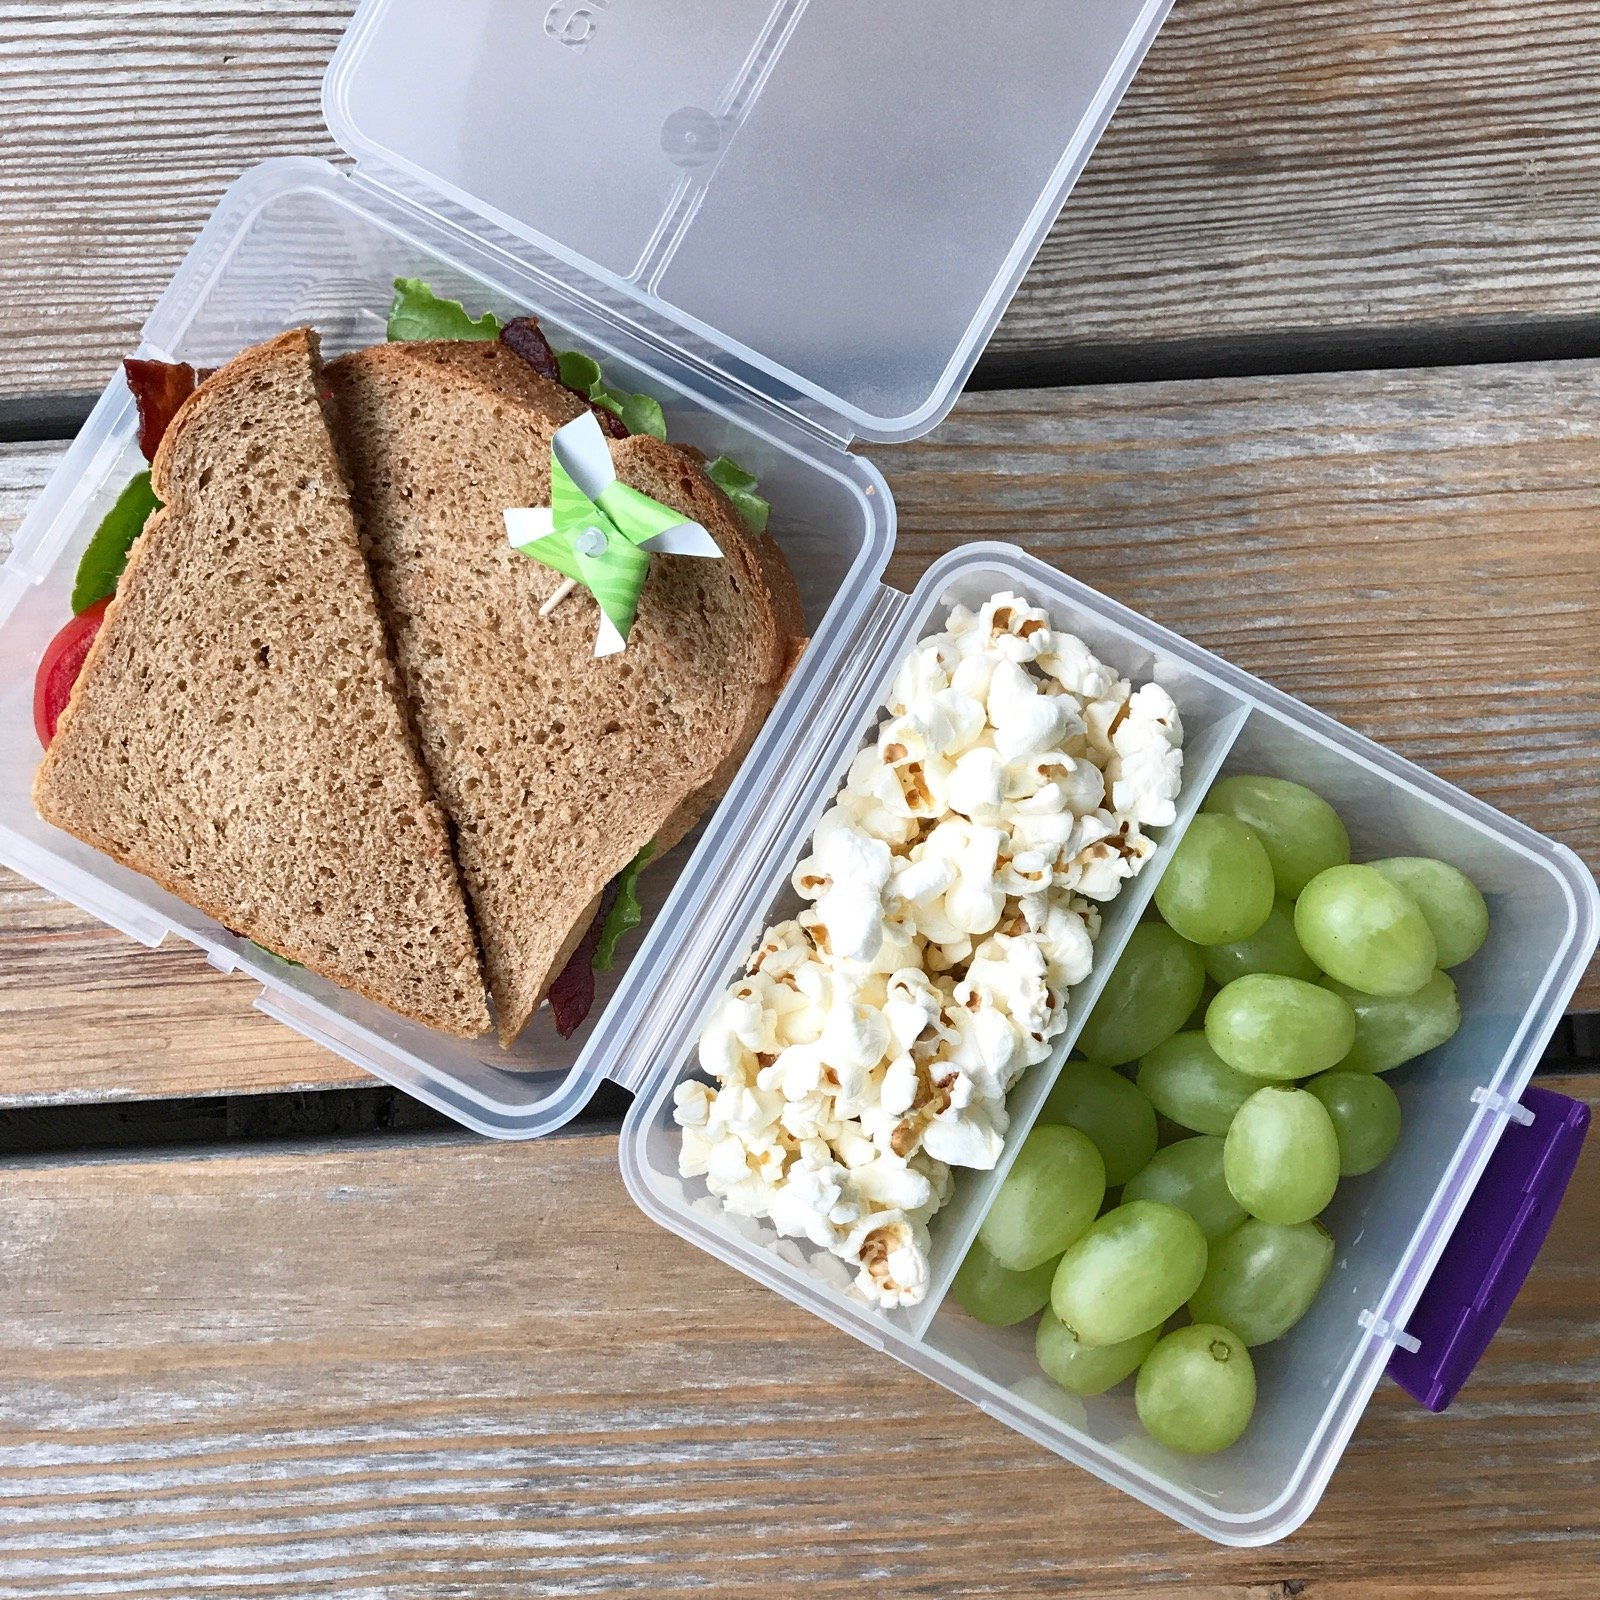 Packed school lunch with BLT on Whole-Wheat bread, Grapes, Popcorn